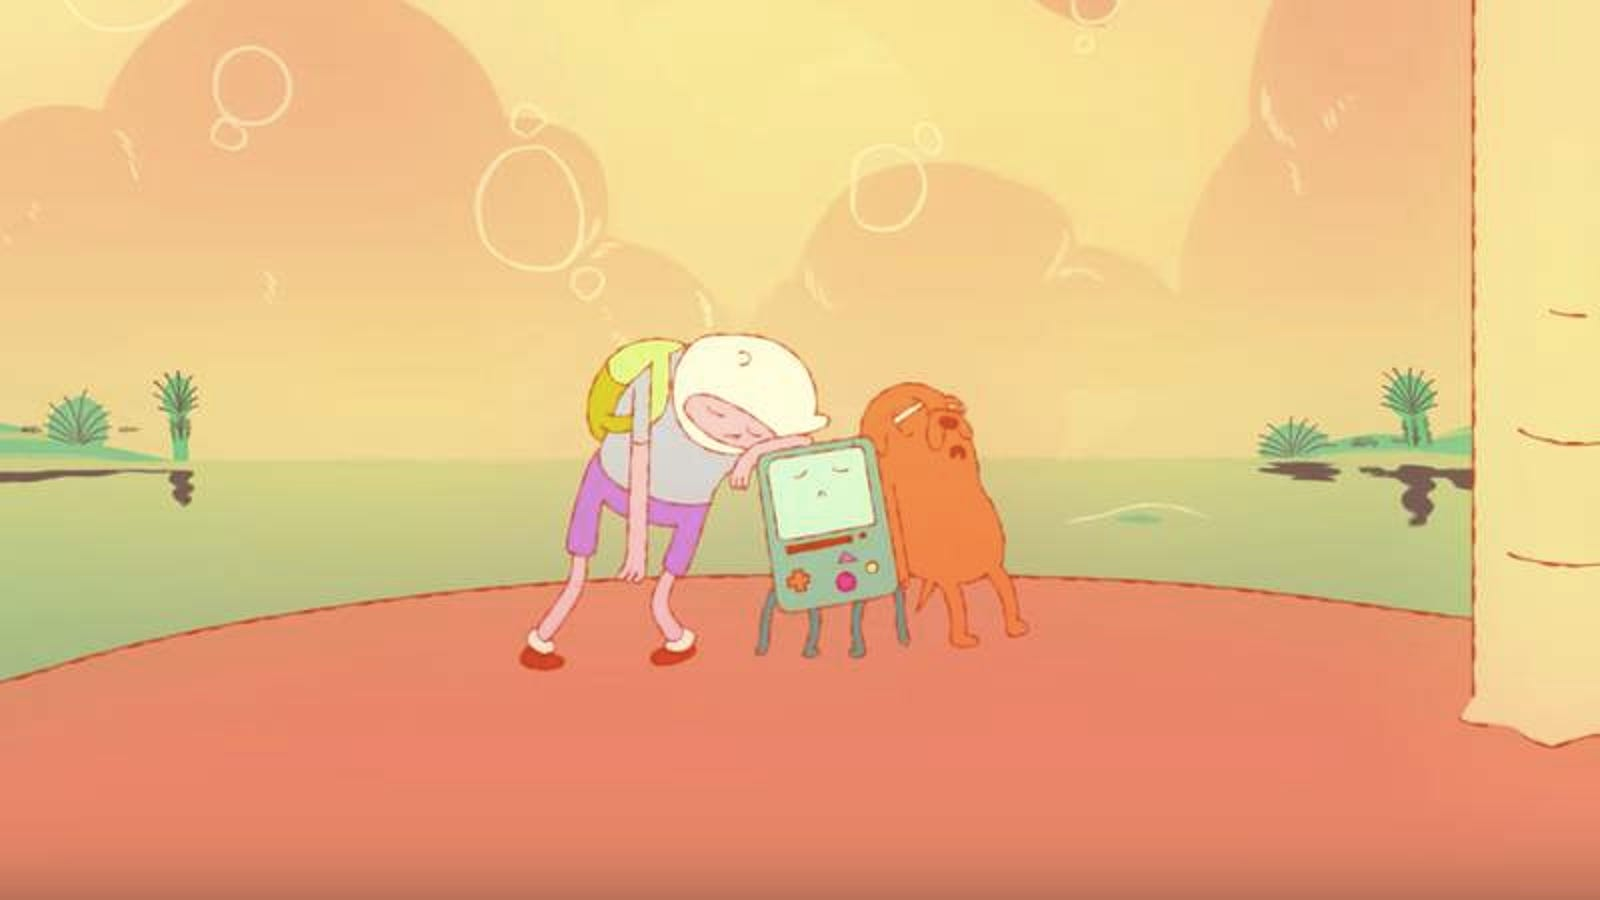 Adventure Time welcomes guest animators that experiment with style